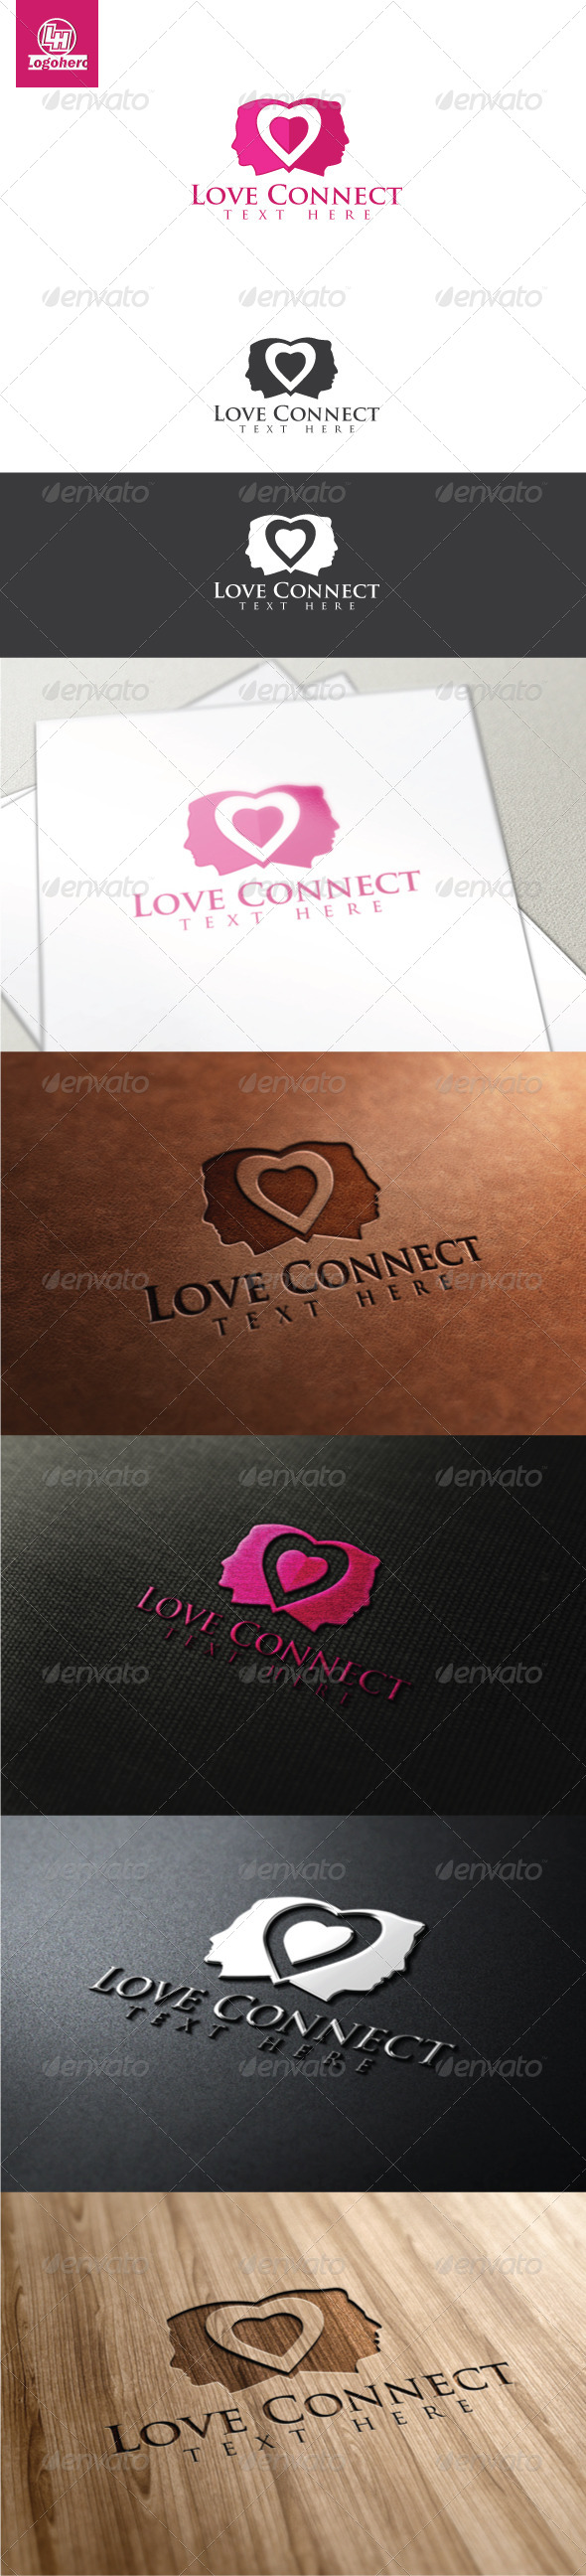 GraphicRiver Love Connect Logo Template 4470135